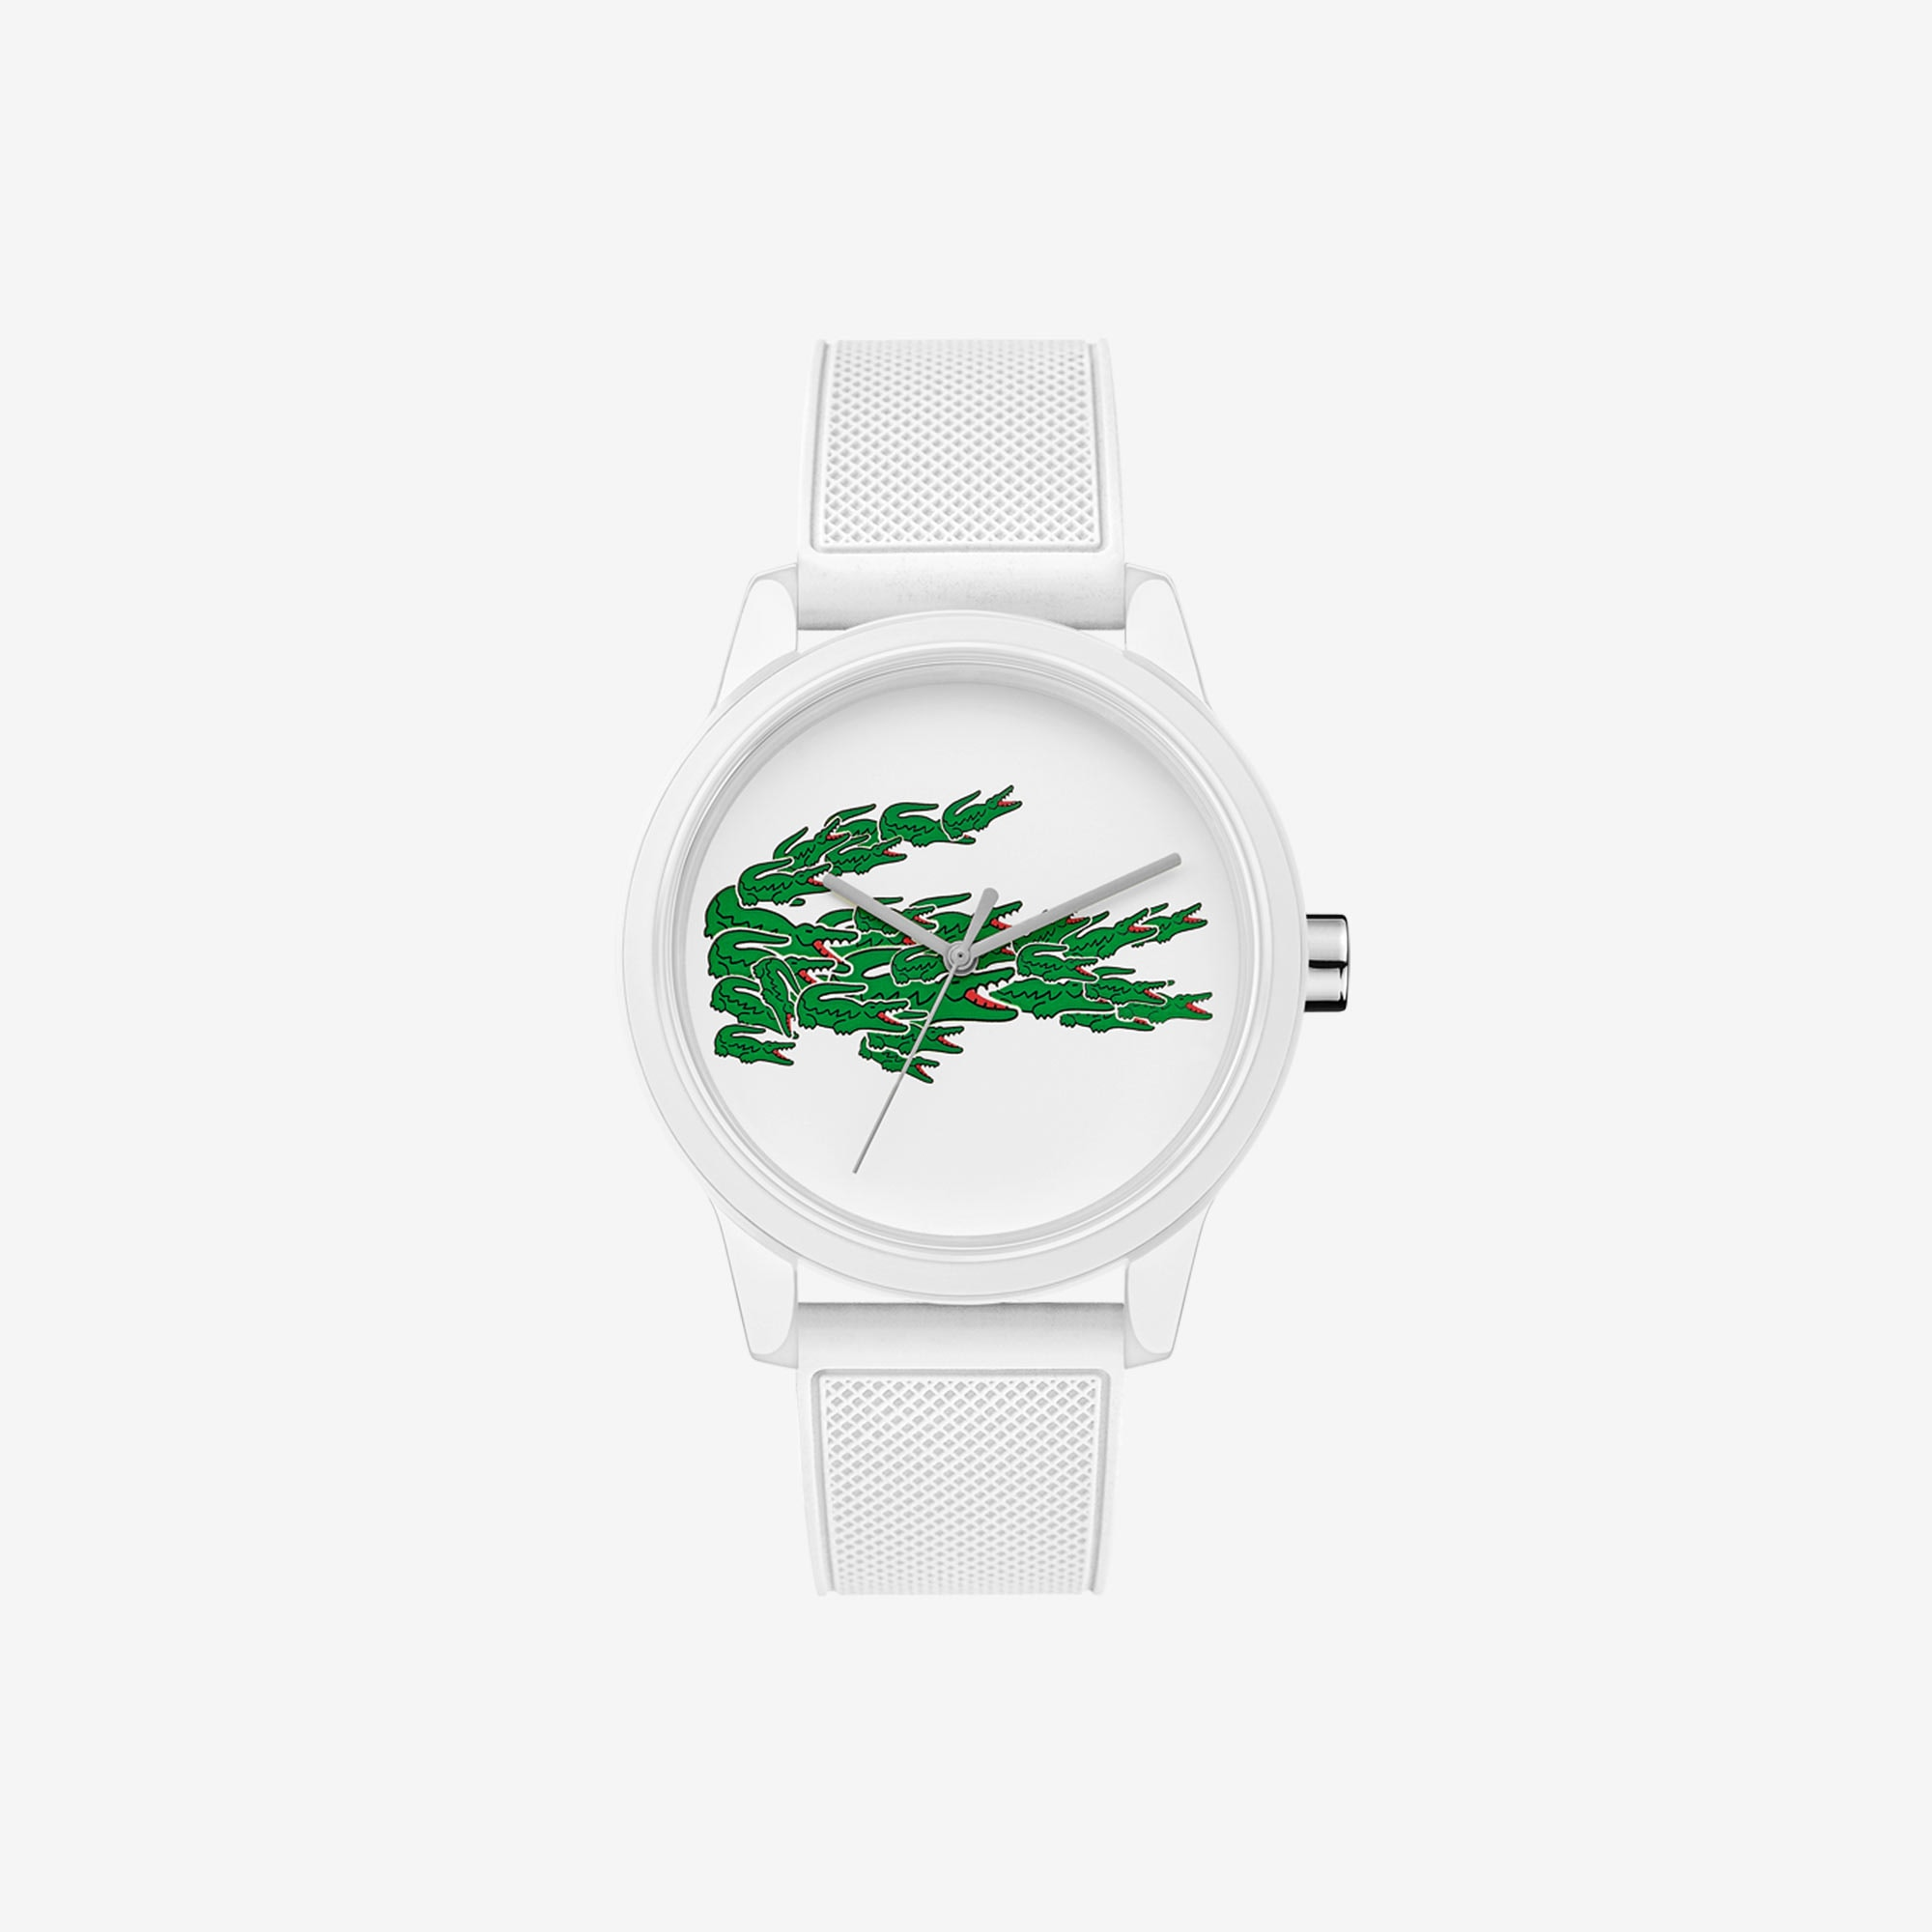 Gents Lacoste 12.12 Watch with White Silicone Petit Piqué Strap